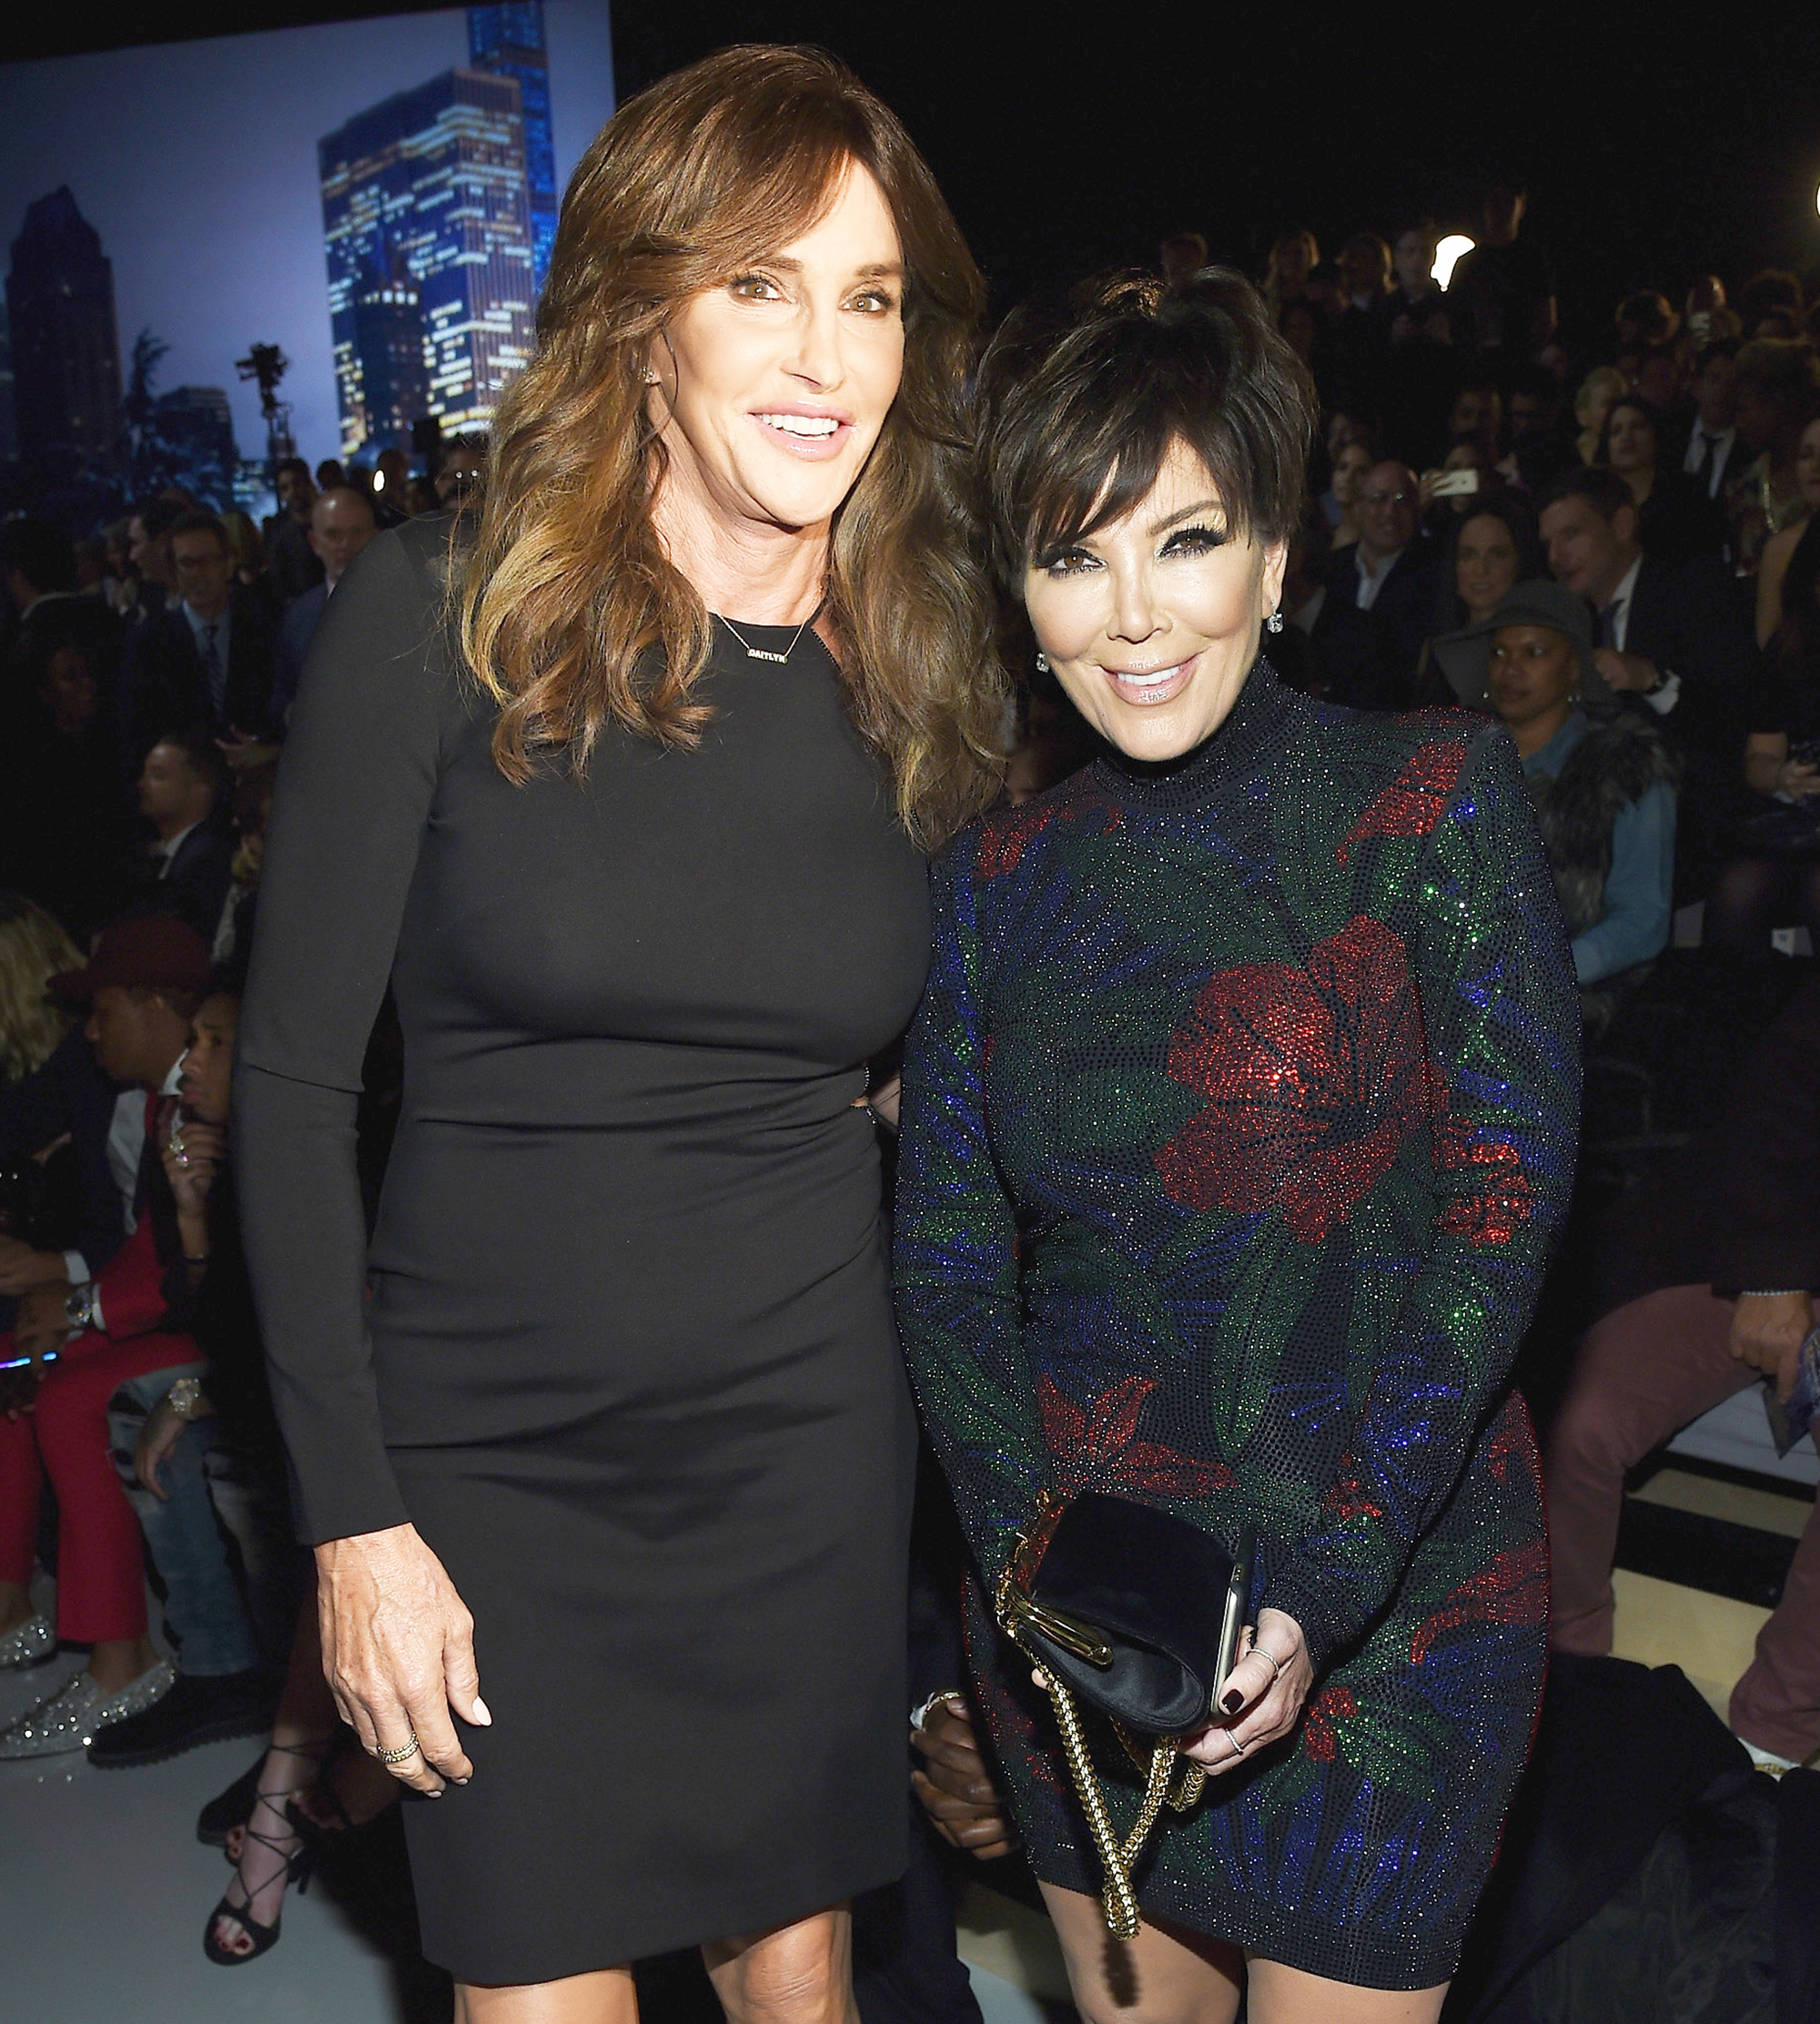 Bruce jenner dating chris best friend